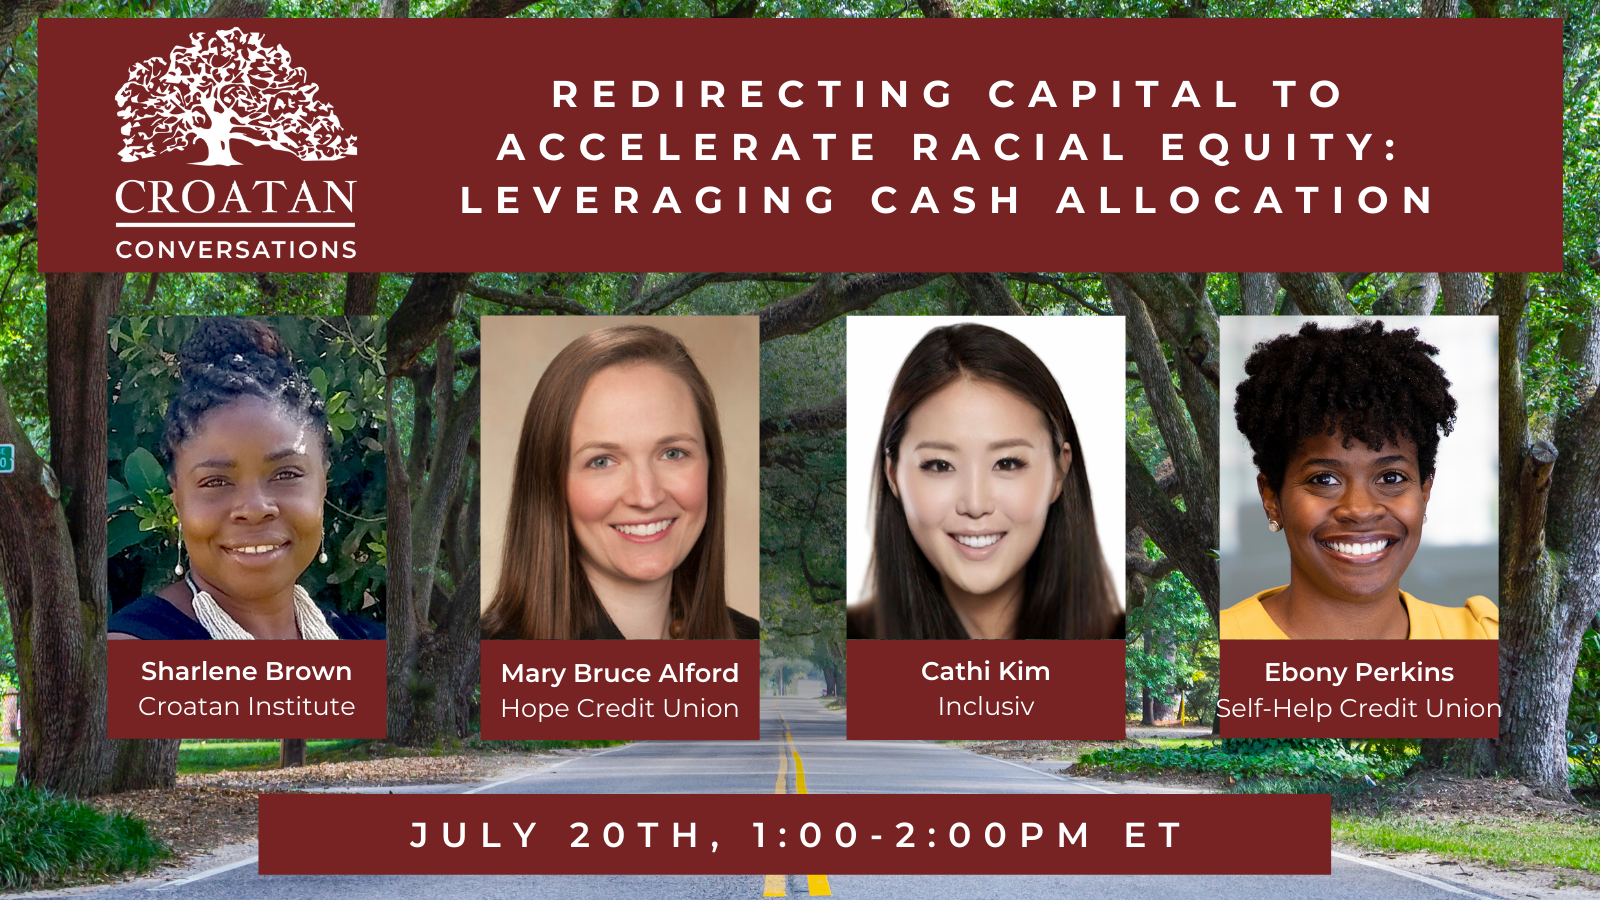 Redirecting Capital to Accelerate Racial Equity: Leveraging Cash Allocation